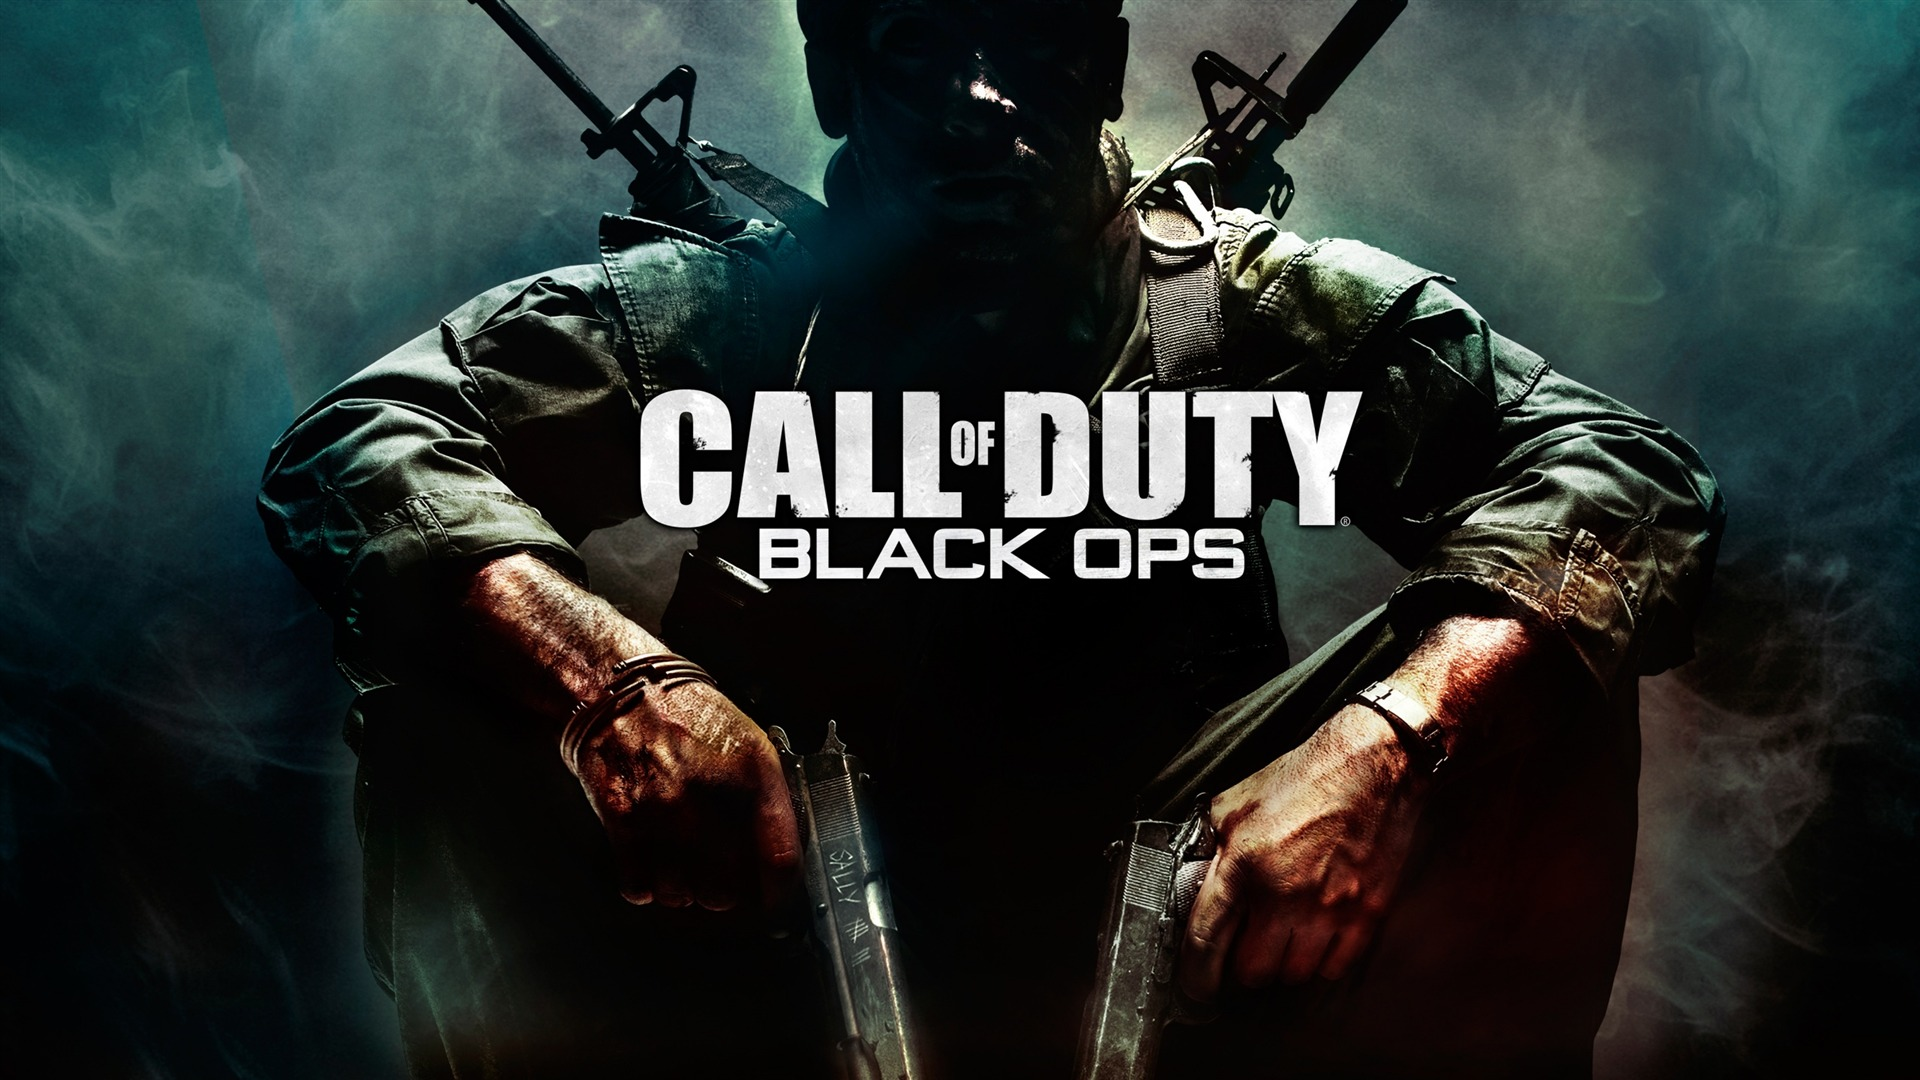 Call Of Duty Black Ops 3 Game Wallpaper Preview 10wallpaper Com